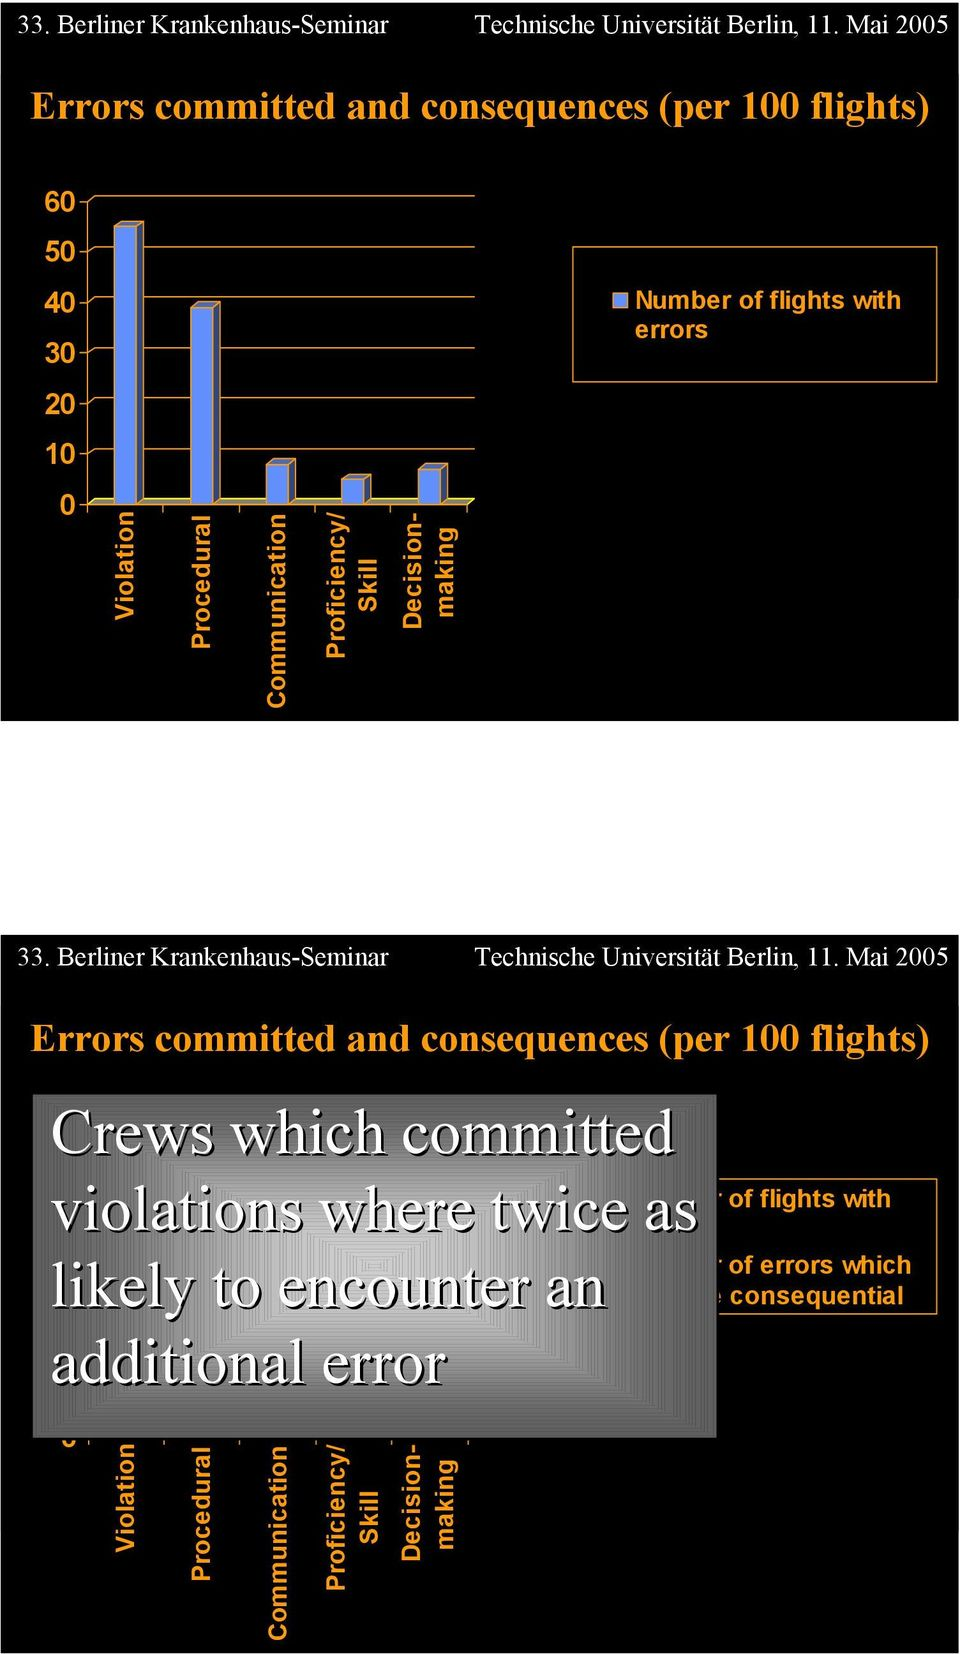 Crews which committed 50 40 violations where twice as 30 likely to encounter an 20 additional error 10 0 Violation